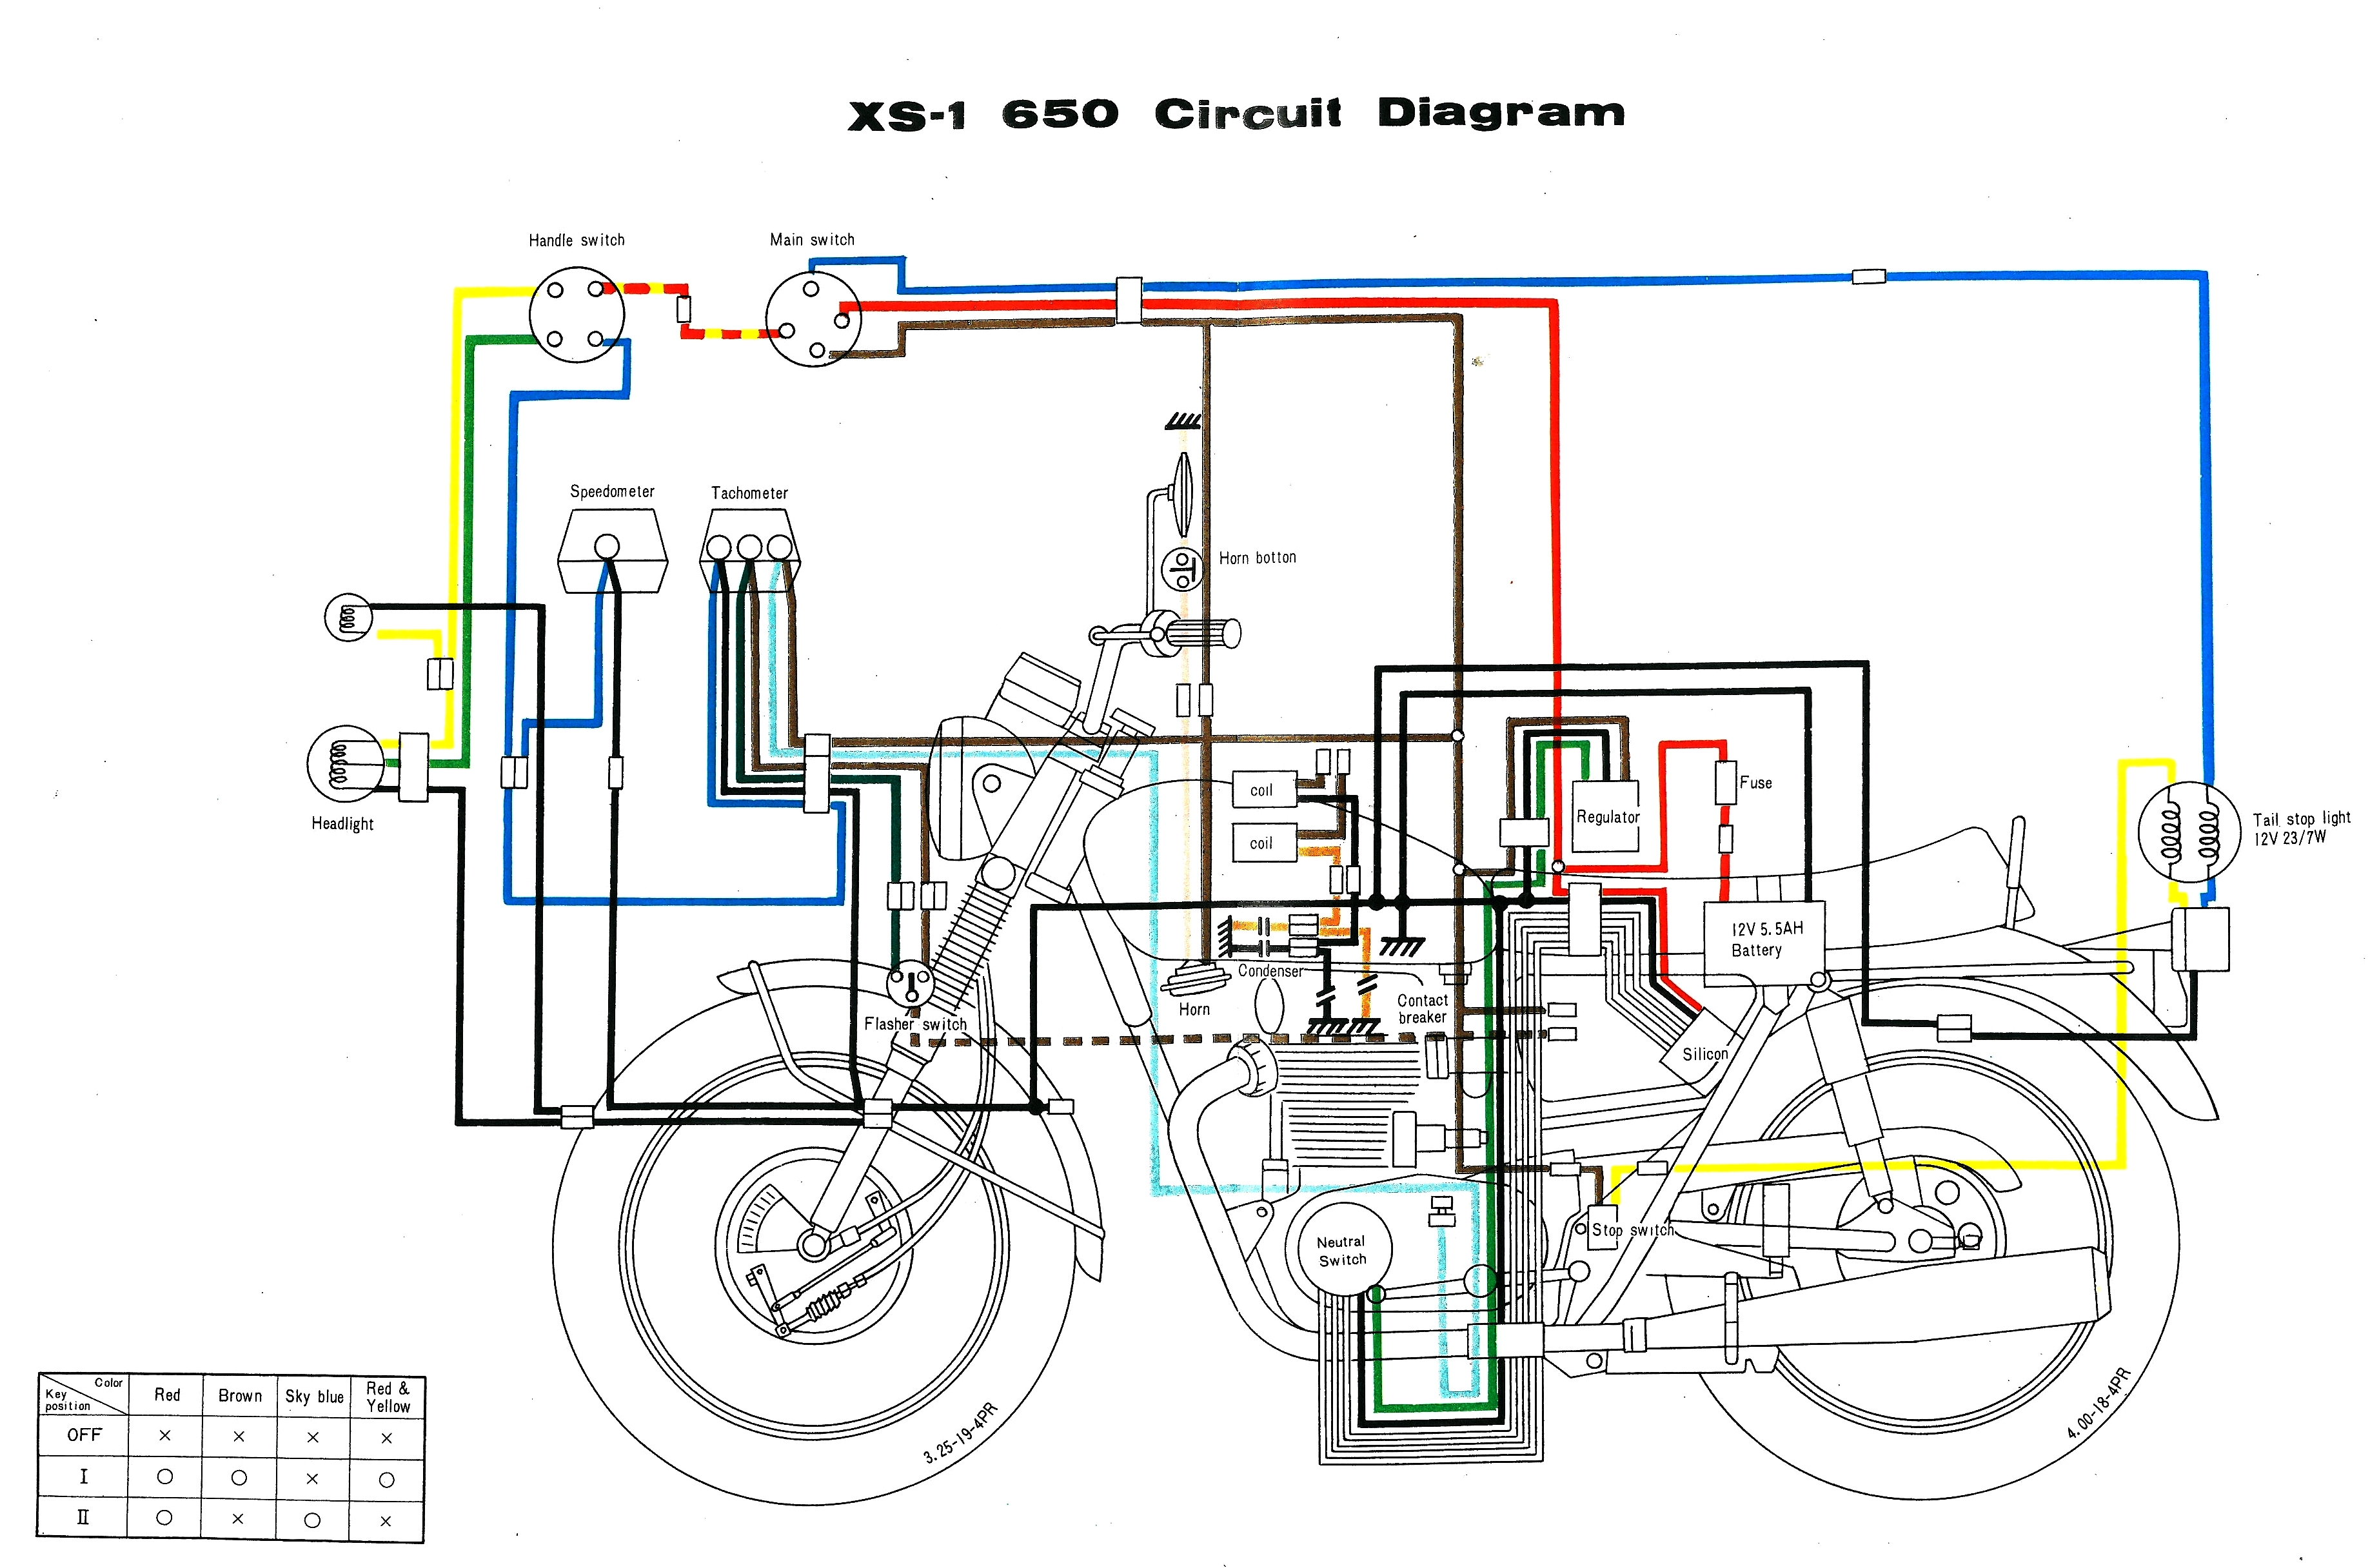 Yamaha Xs650 Wiring Harness Diagram | Manual E-Books - Xs650 Wiring Diagram